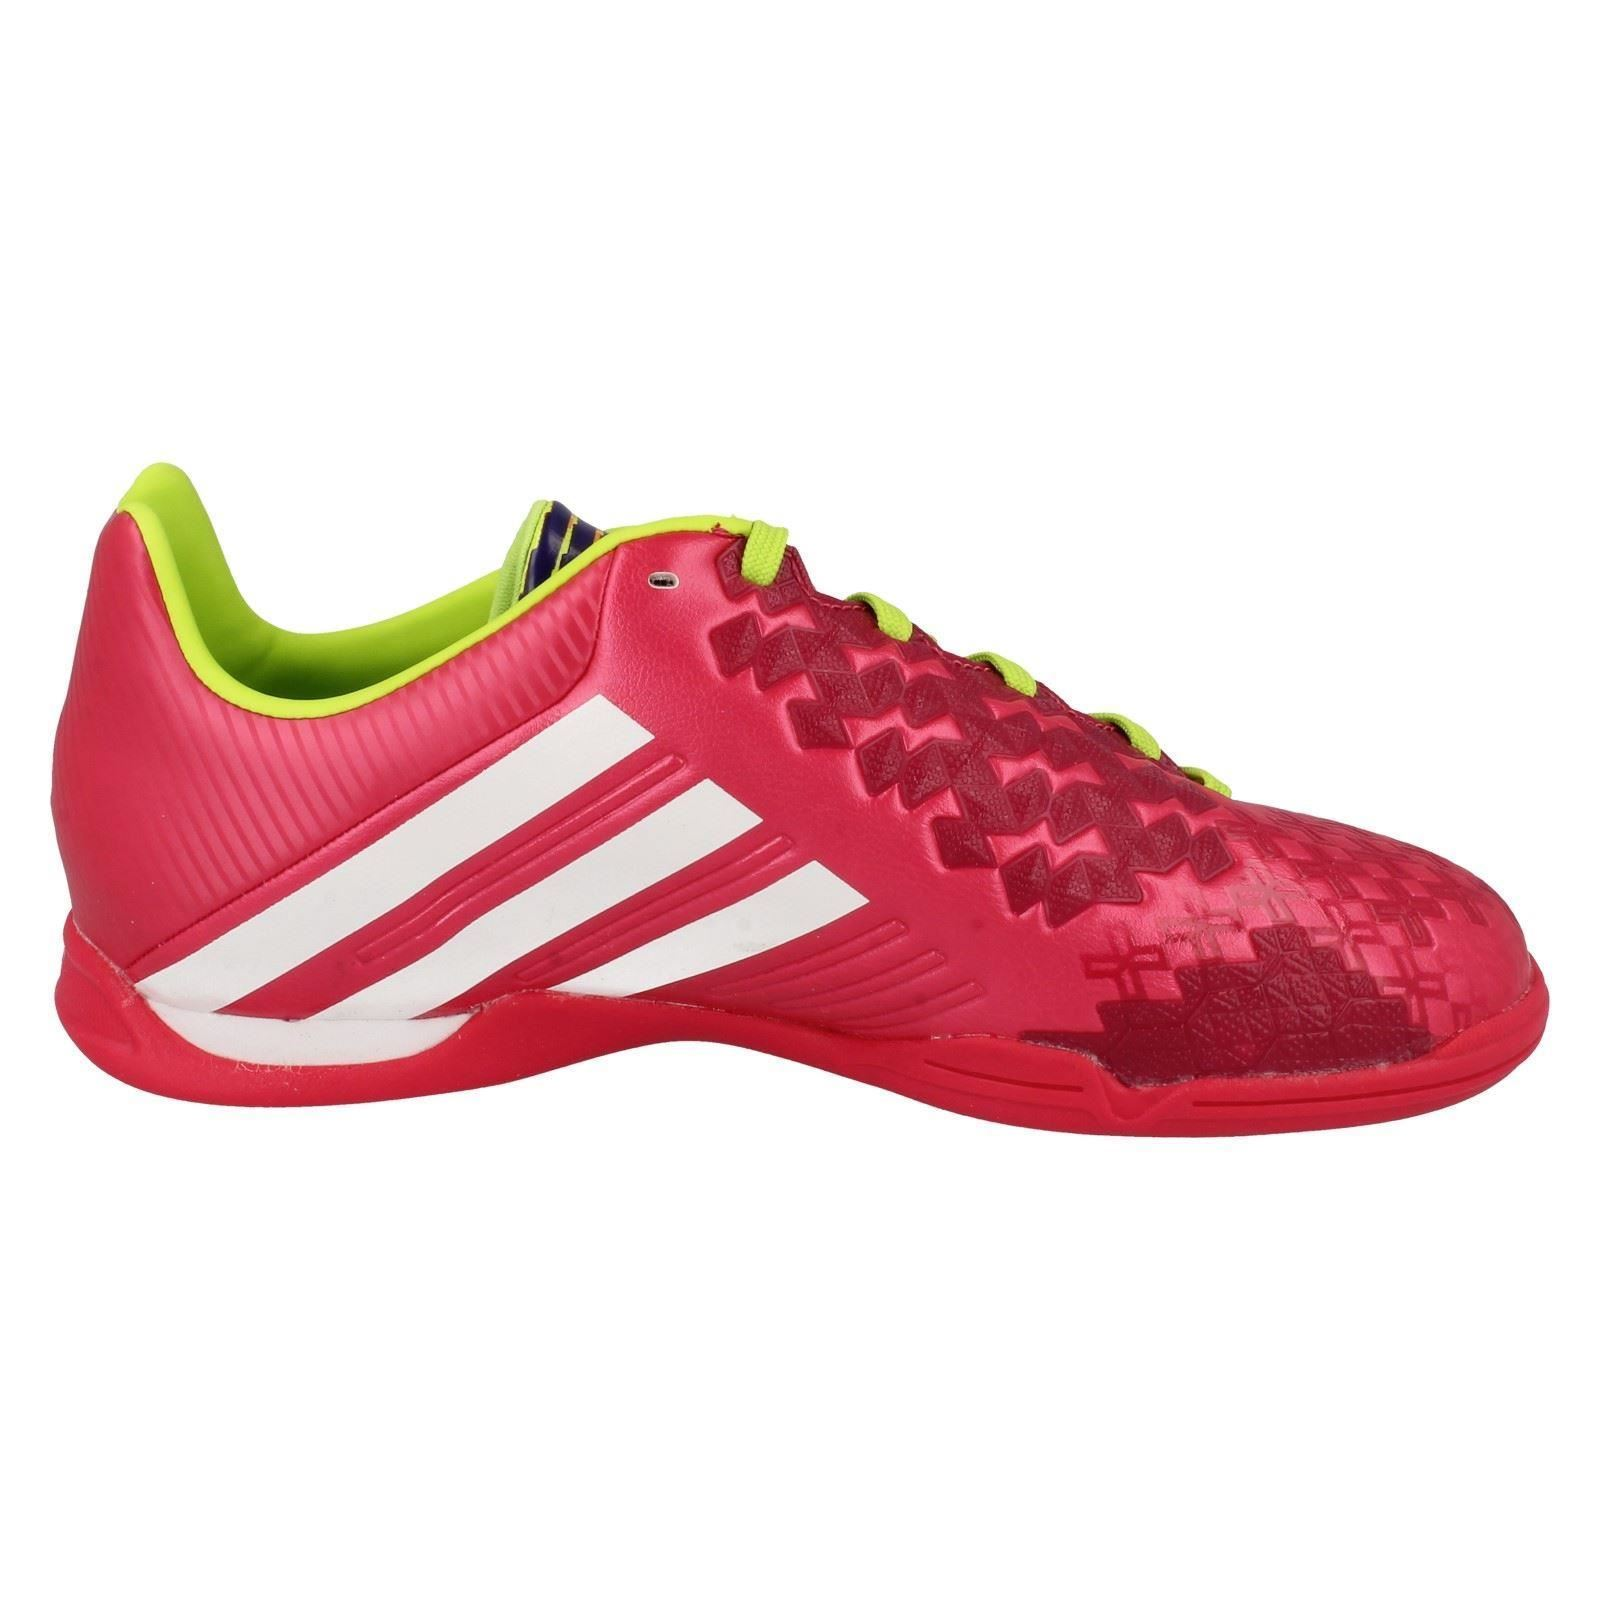 Boys Girls Adidas Lace Up Football/Astro Trainers - P Absolado LZ IN J